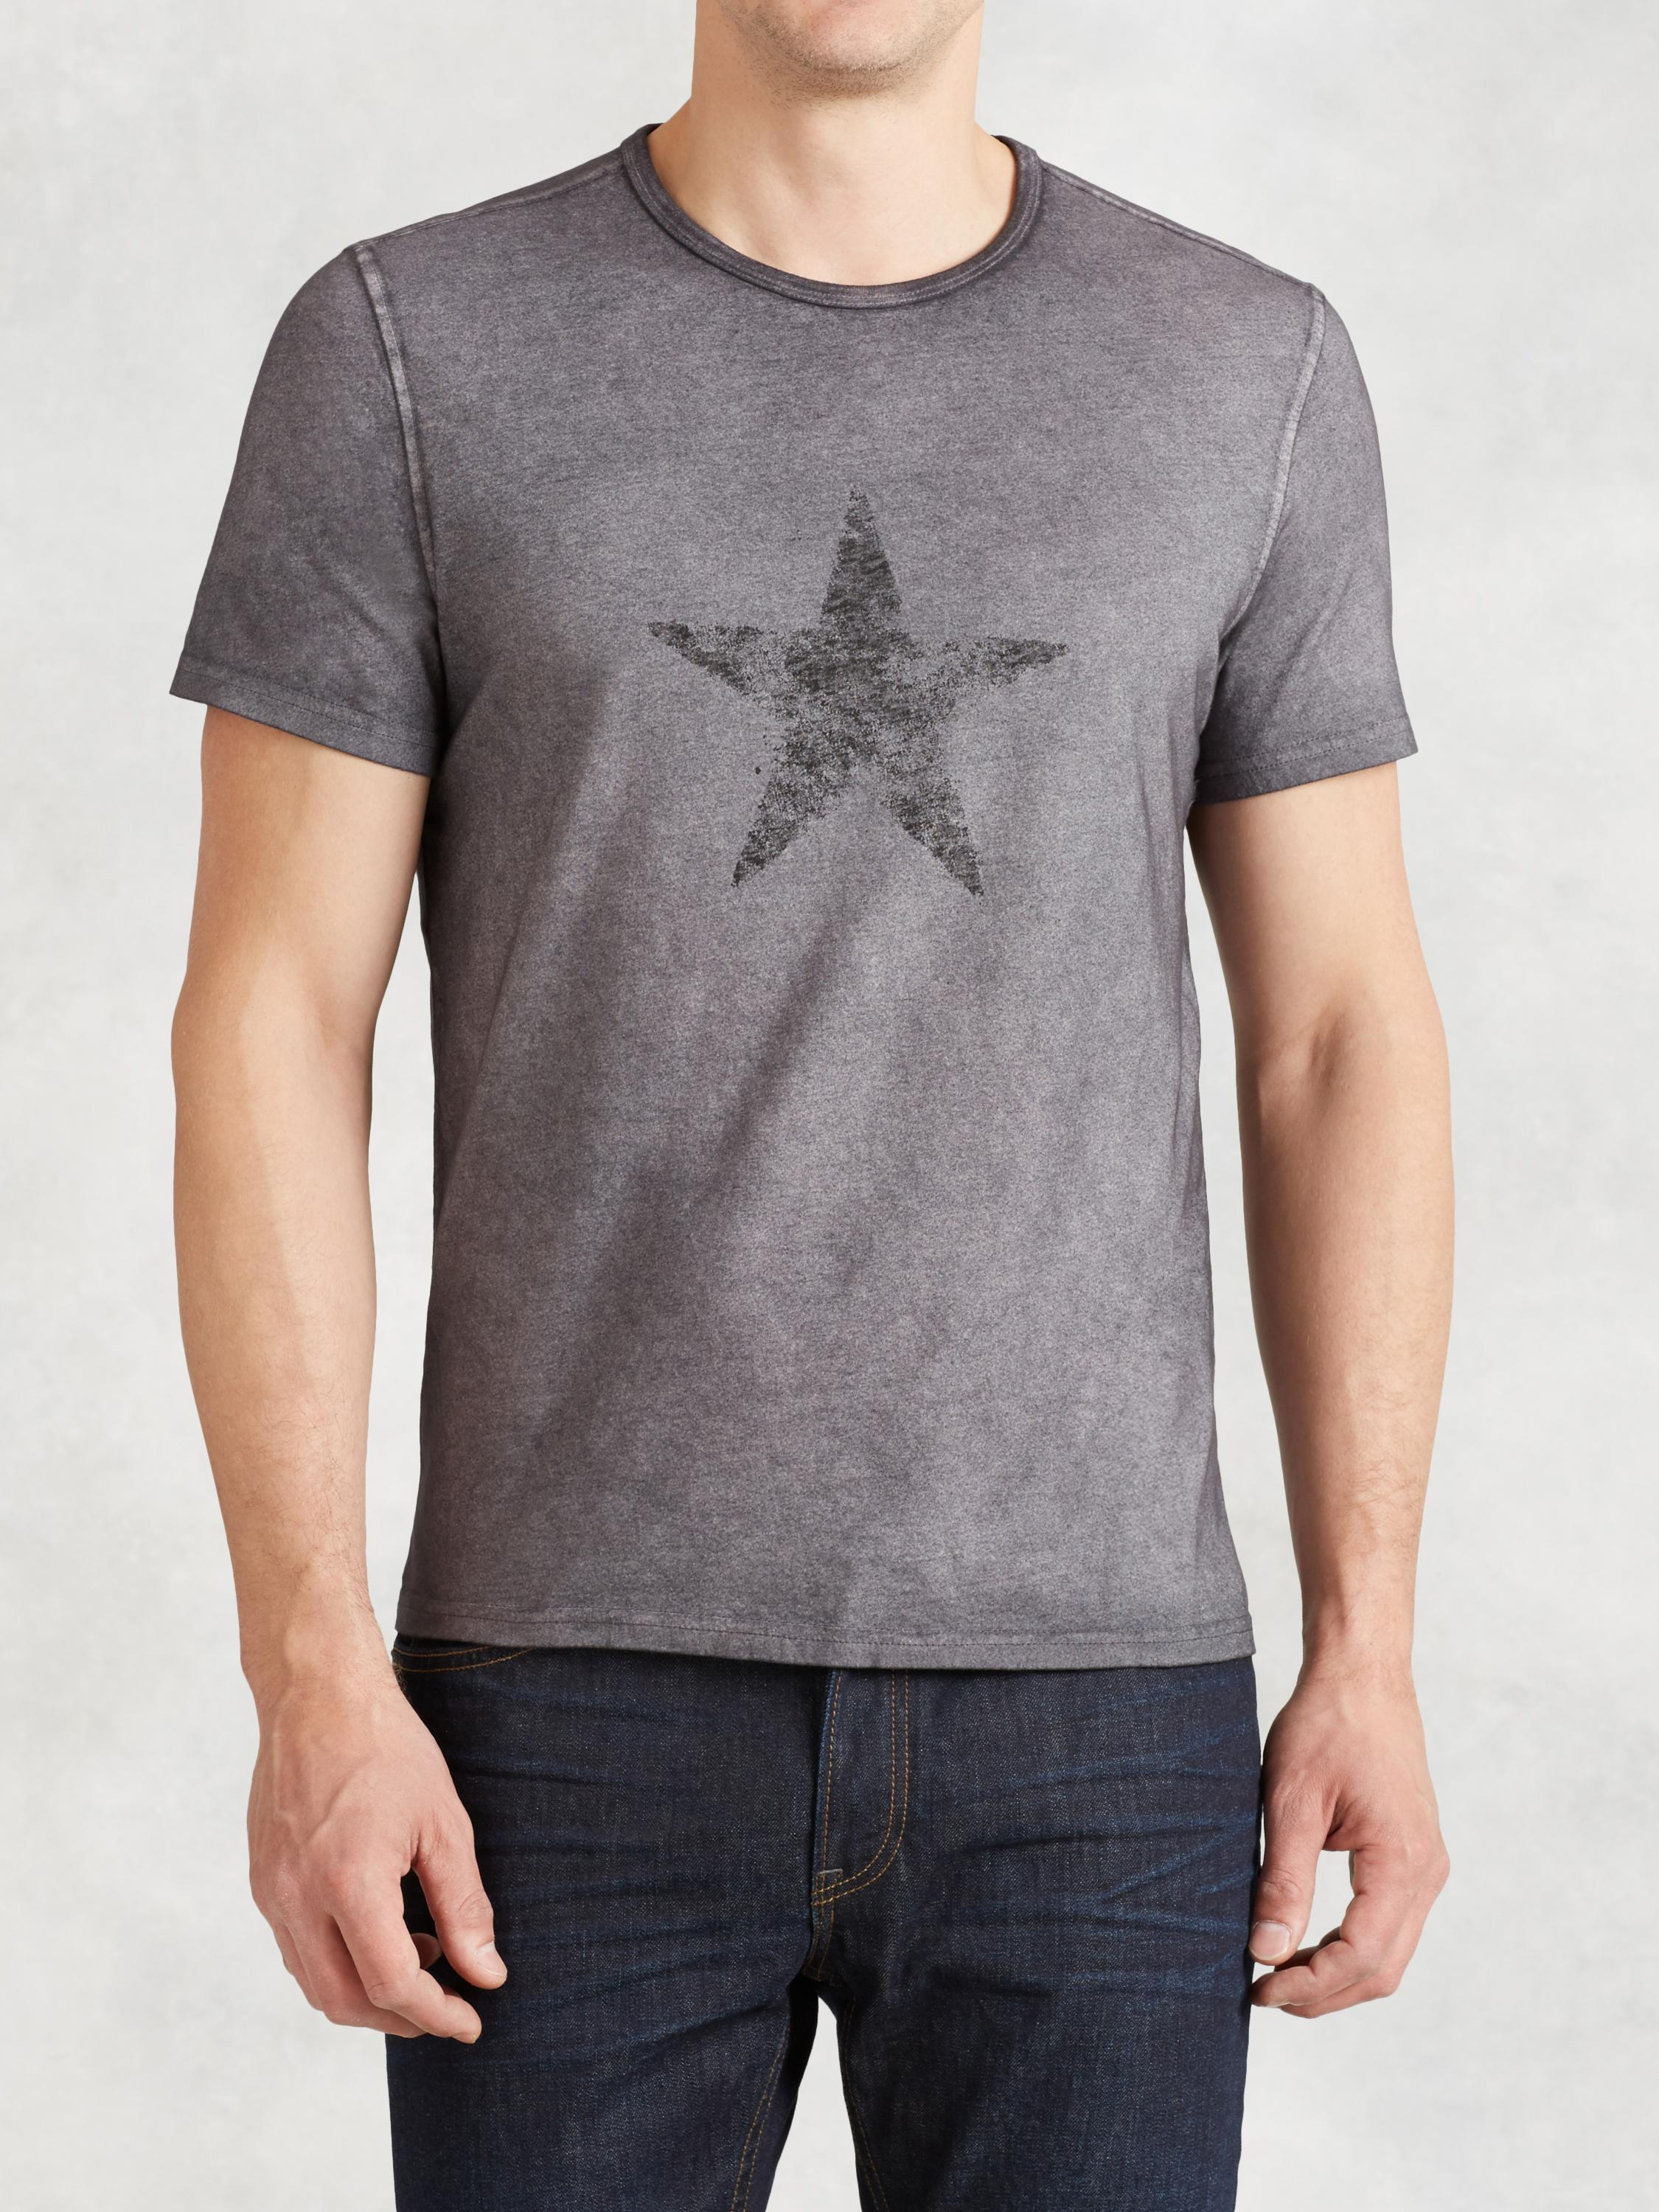 Faded Star Graphic Tee